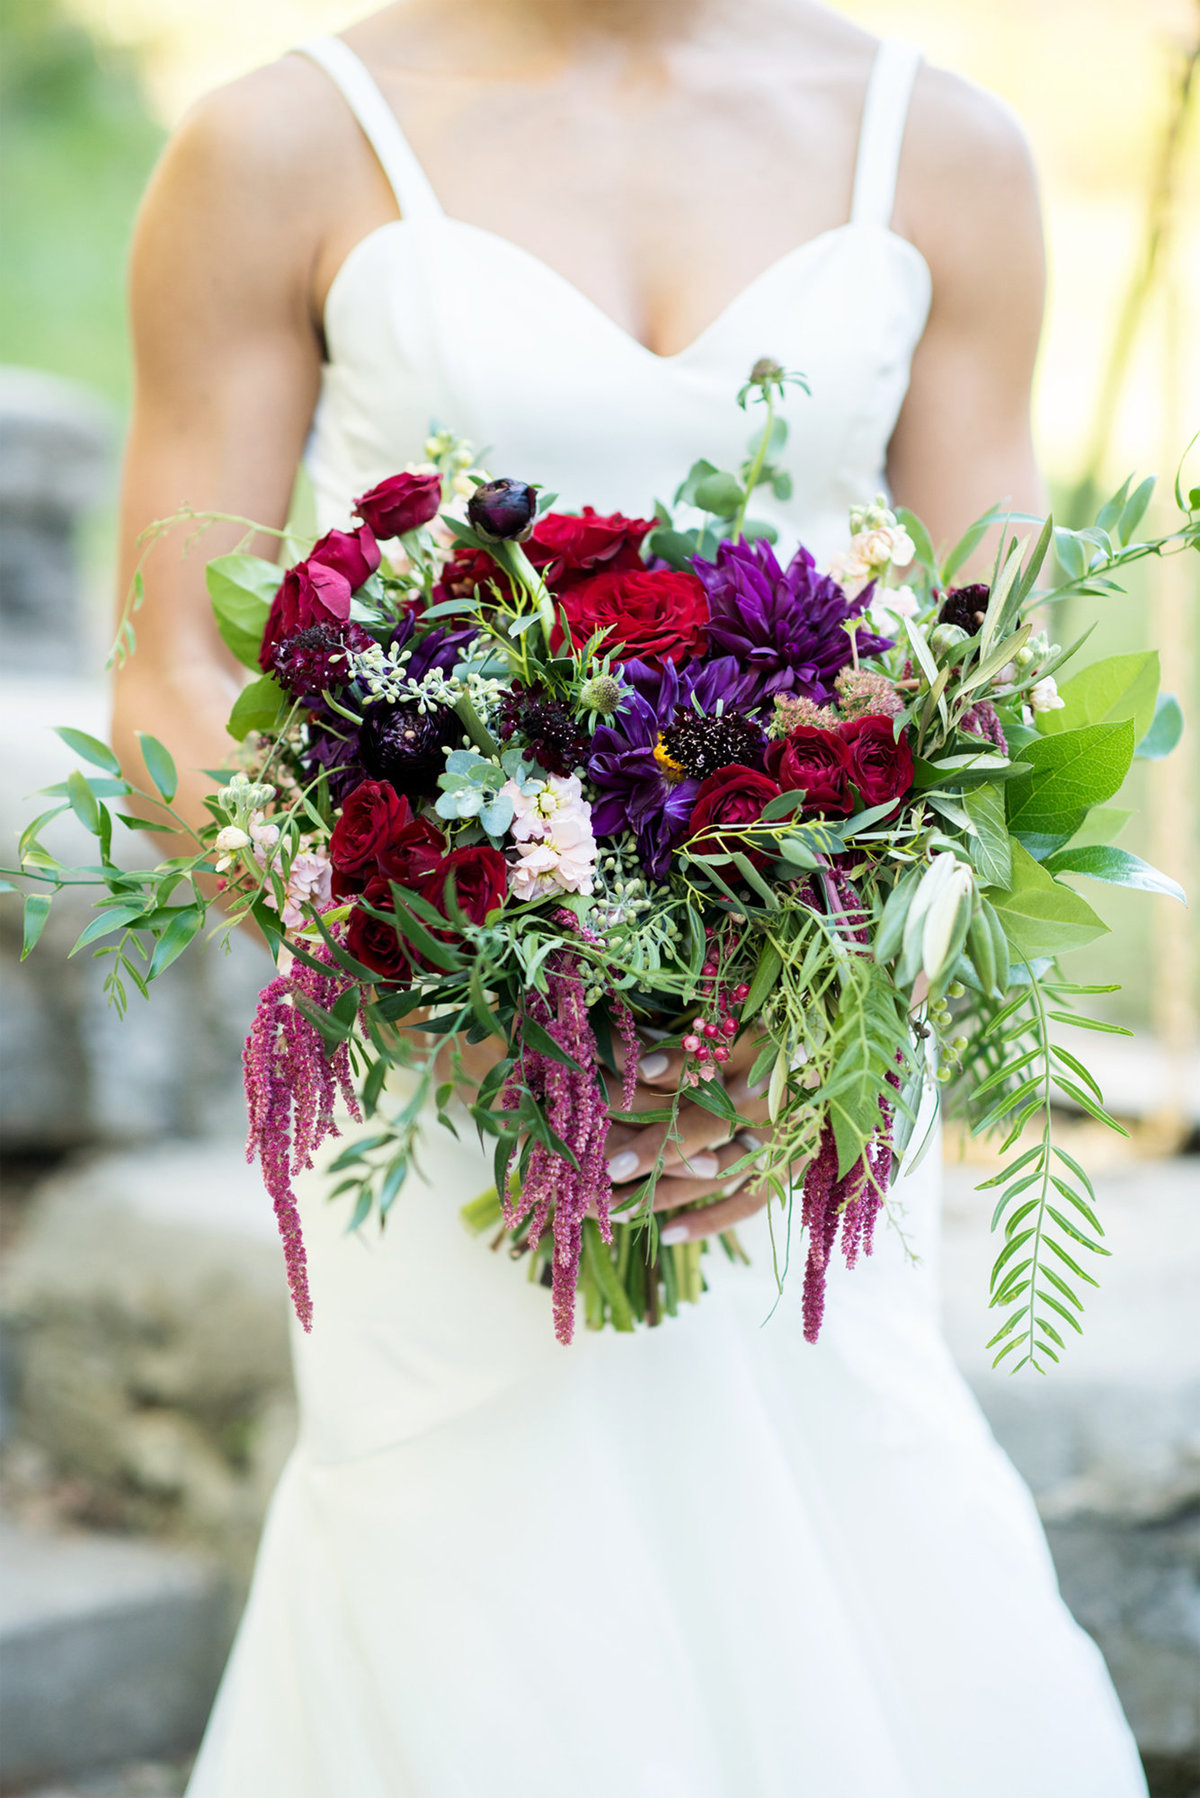 Good Earth bridal bouquet